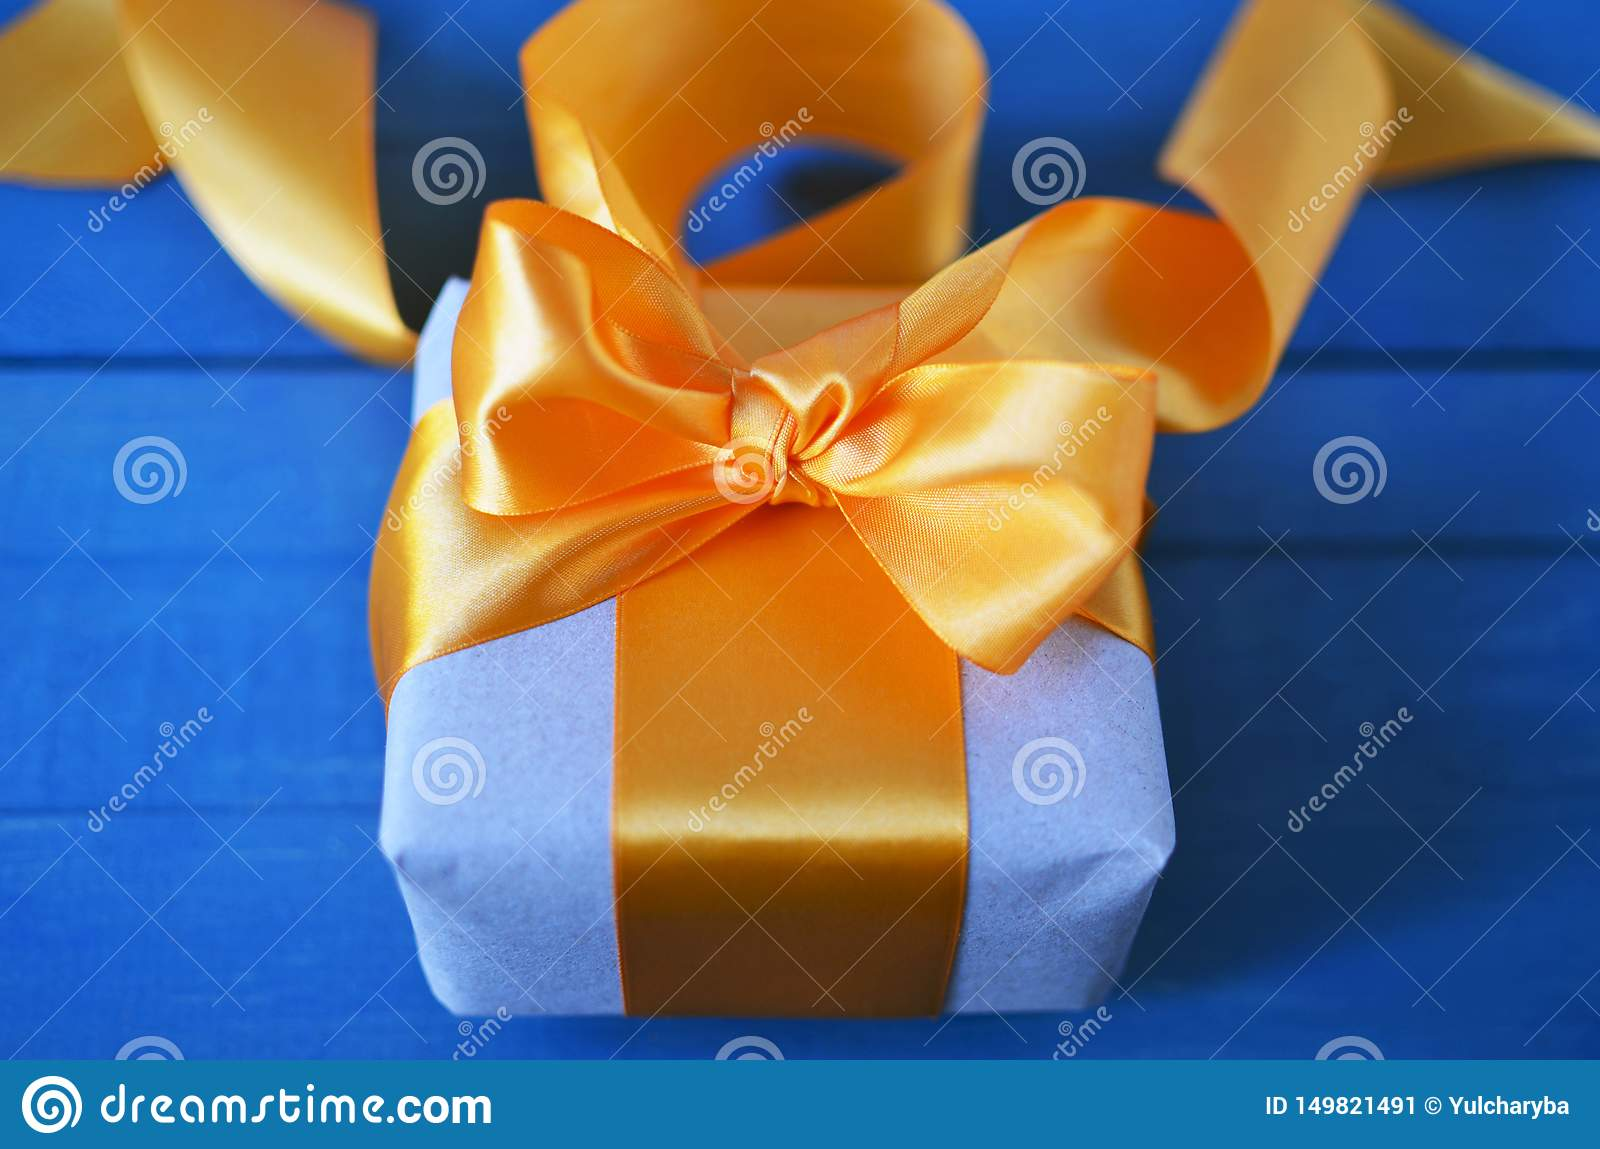 Gift box wrapped with craft paper and bow on neutral background with boke. Holiday concept.